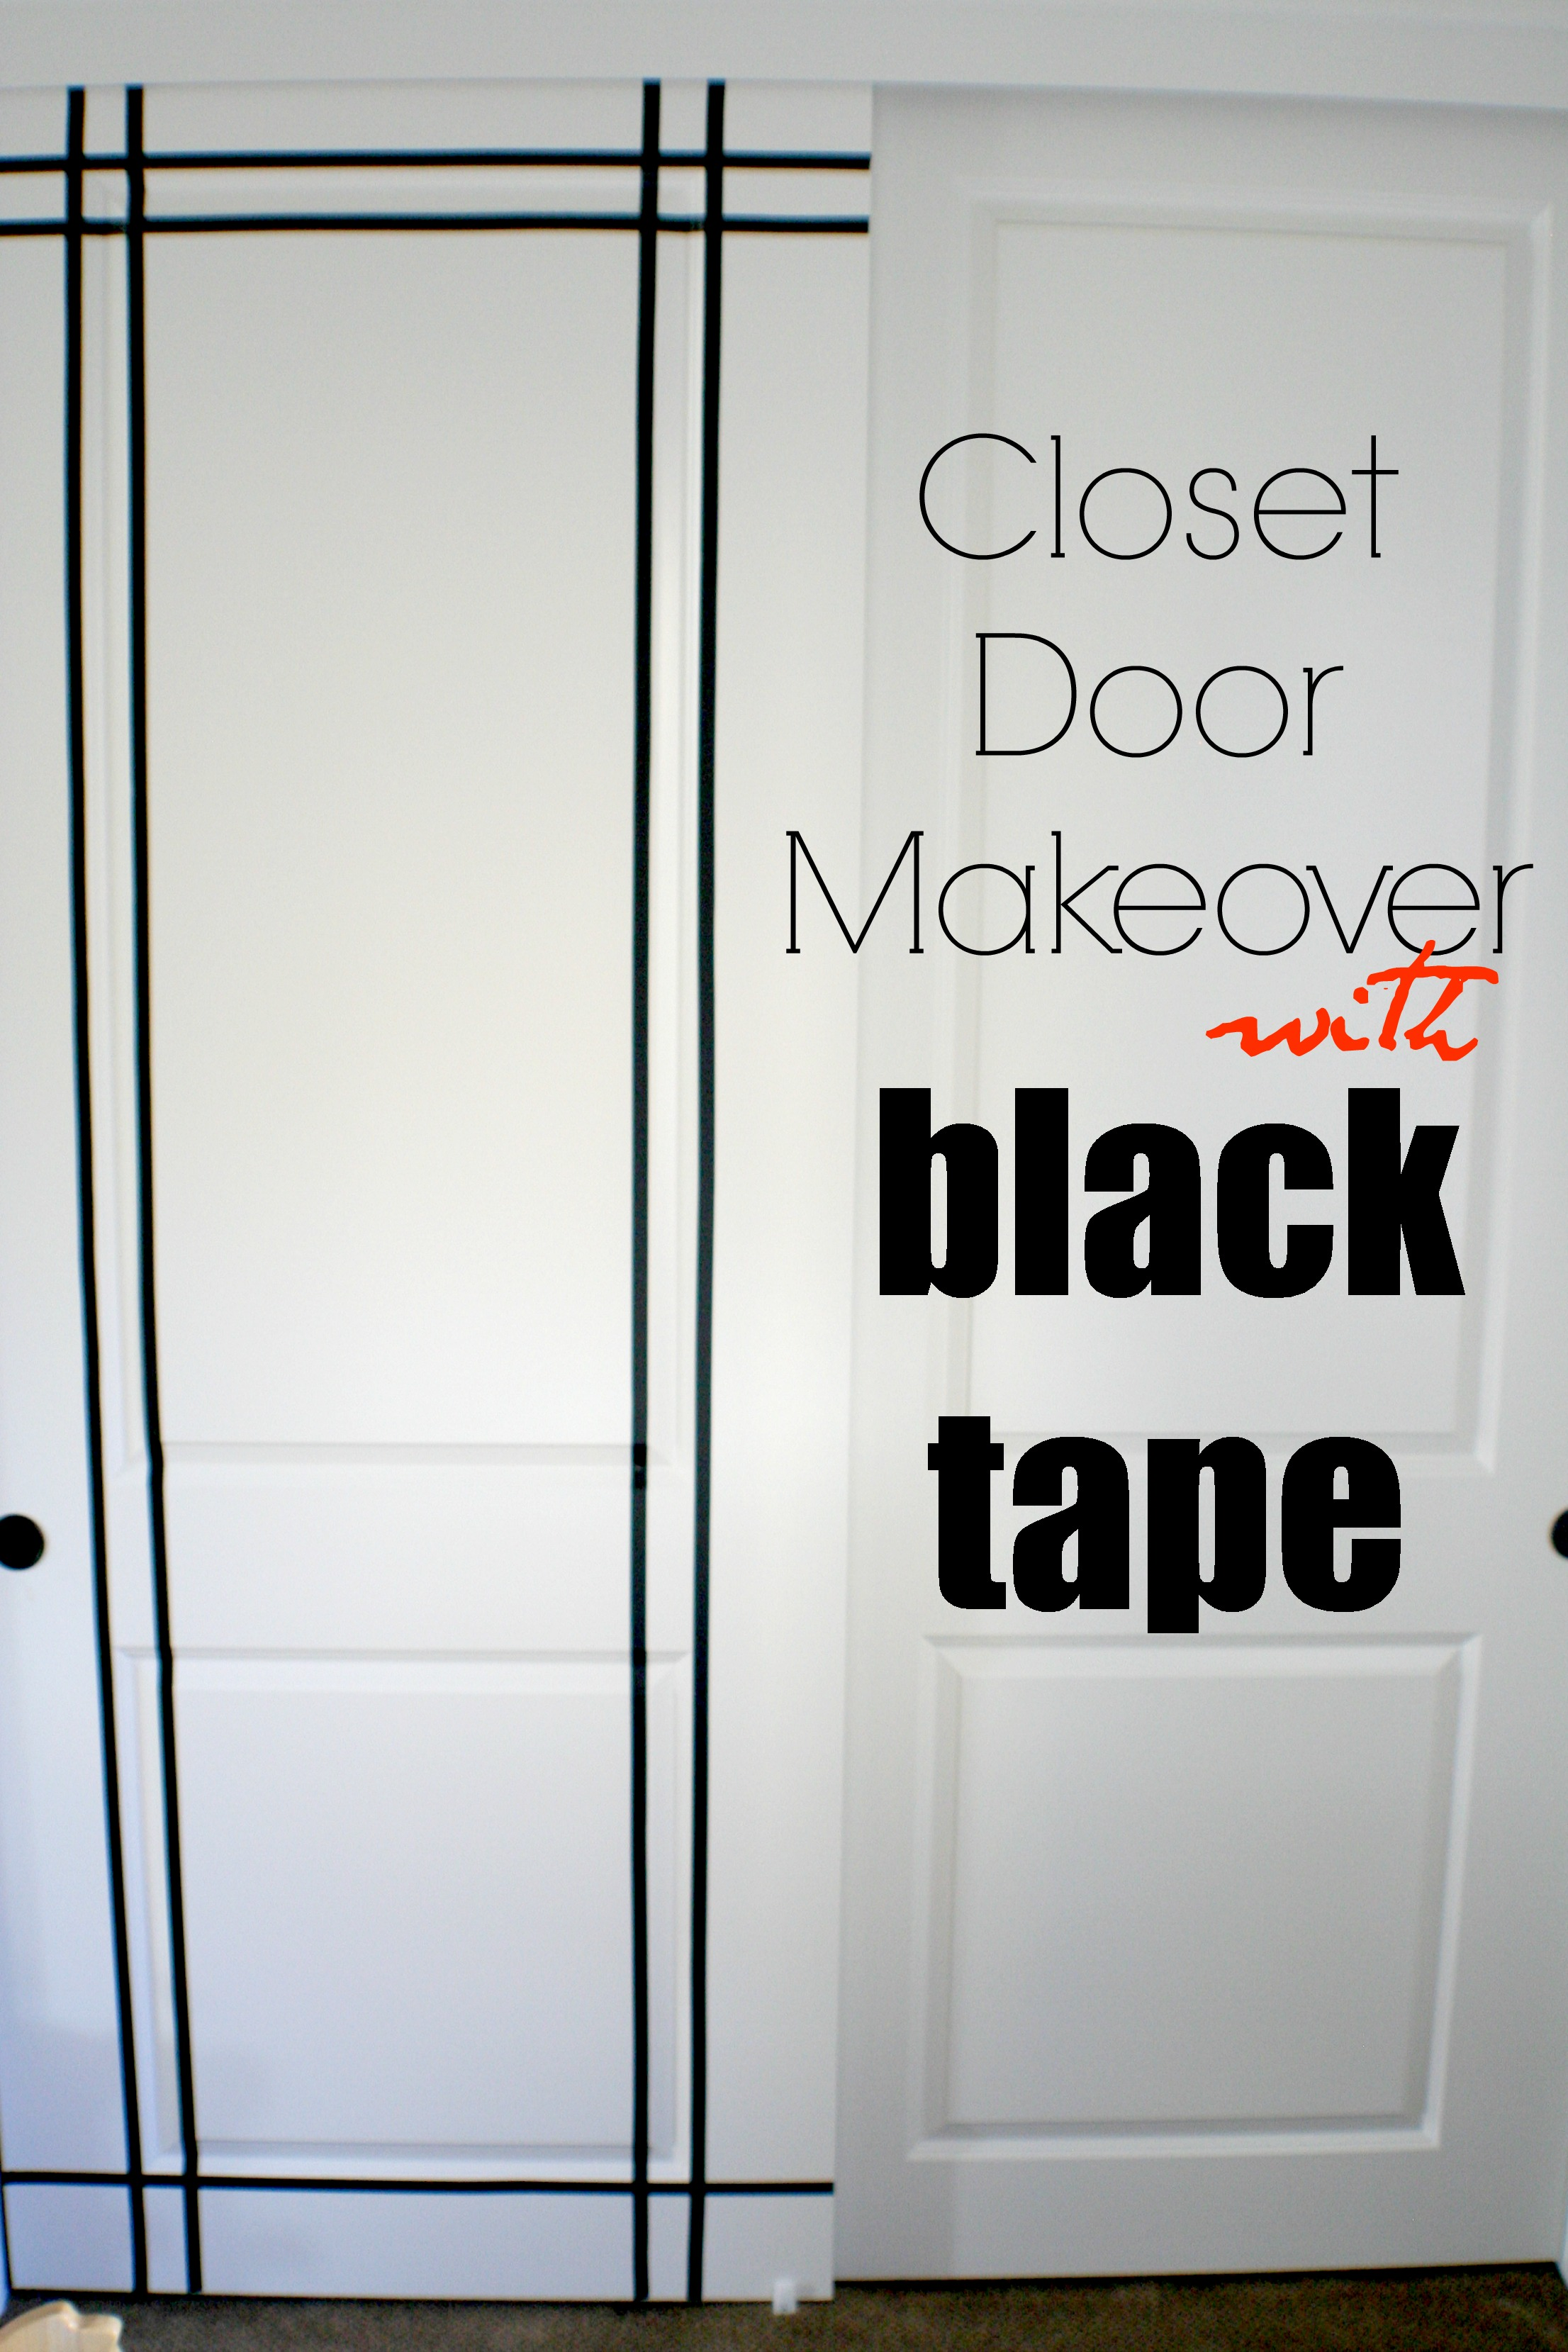 Closet Door Makeover Using Black Tape Amy Krist Interiors